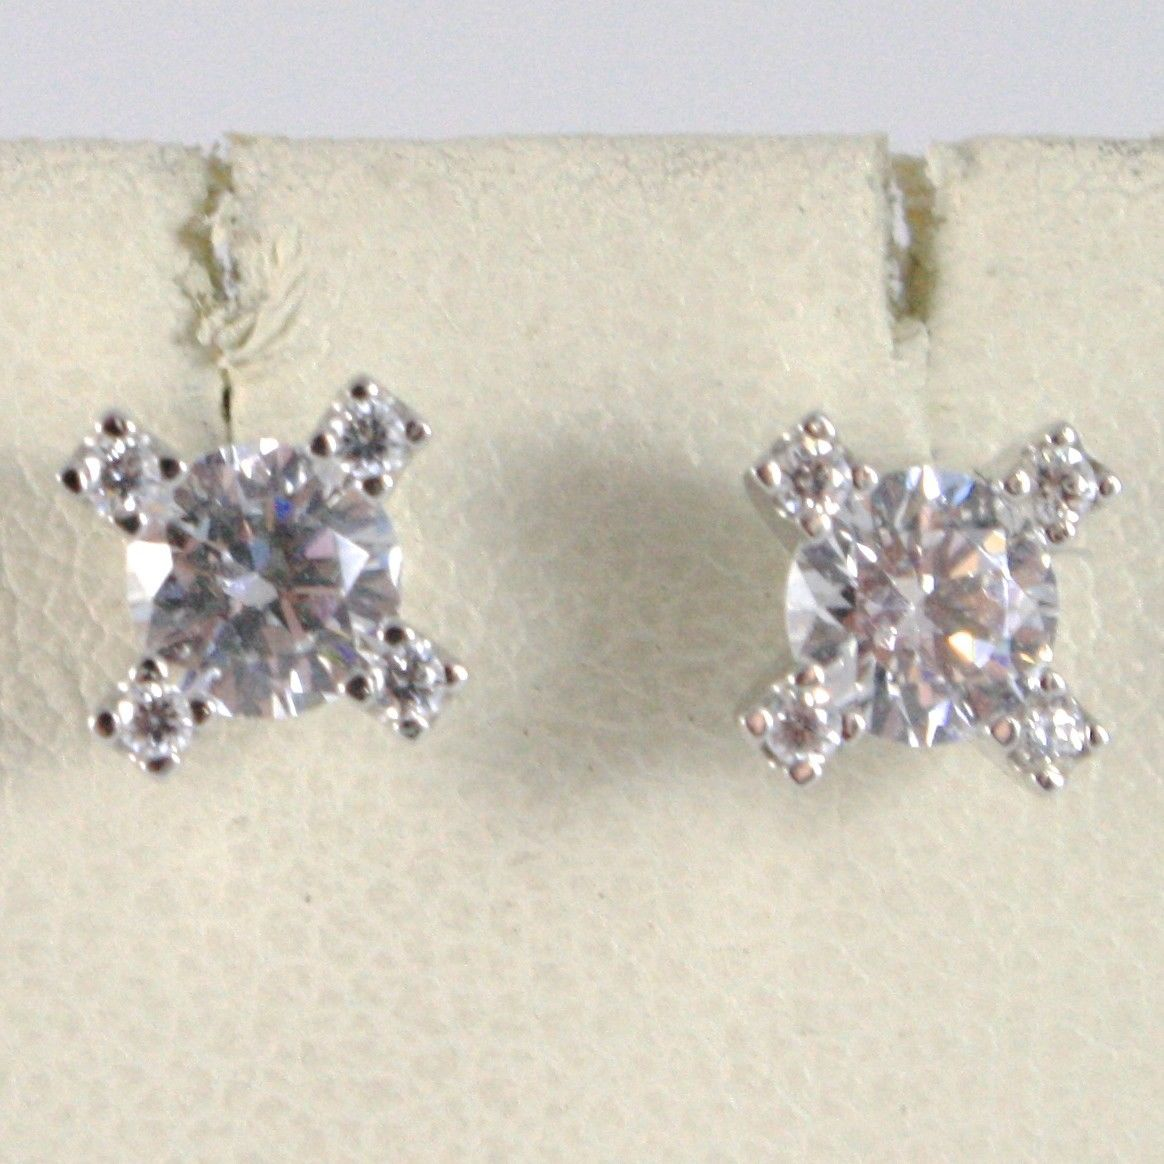 18K WHITE GOLD 7 MM FLOWER CROSS EARRINGS WITH ZIRCONIA 1.2 CARATS MADE IN ITALY